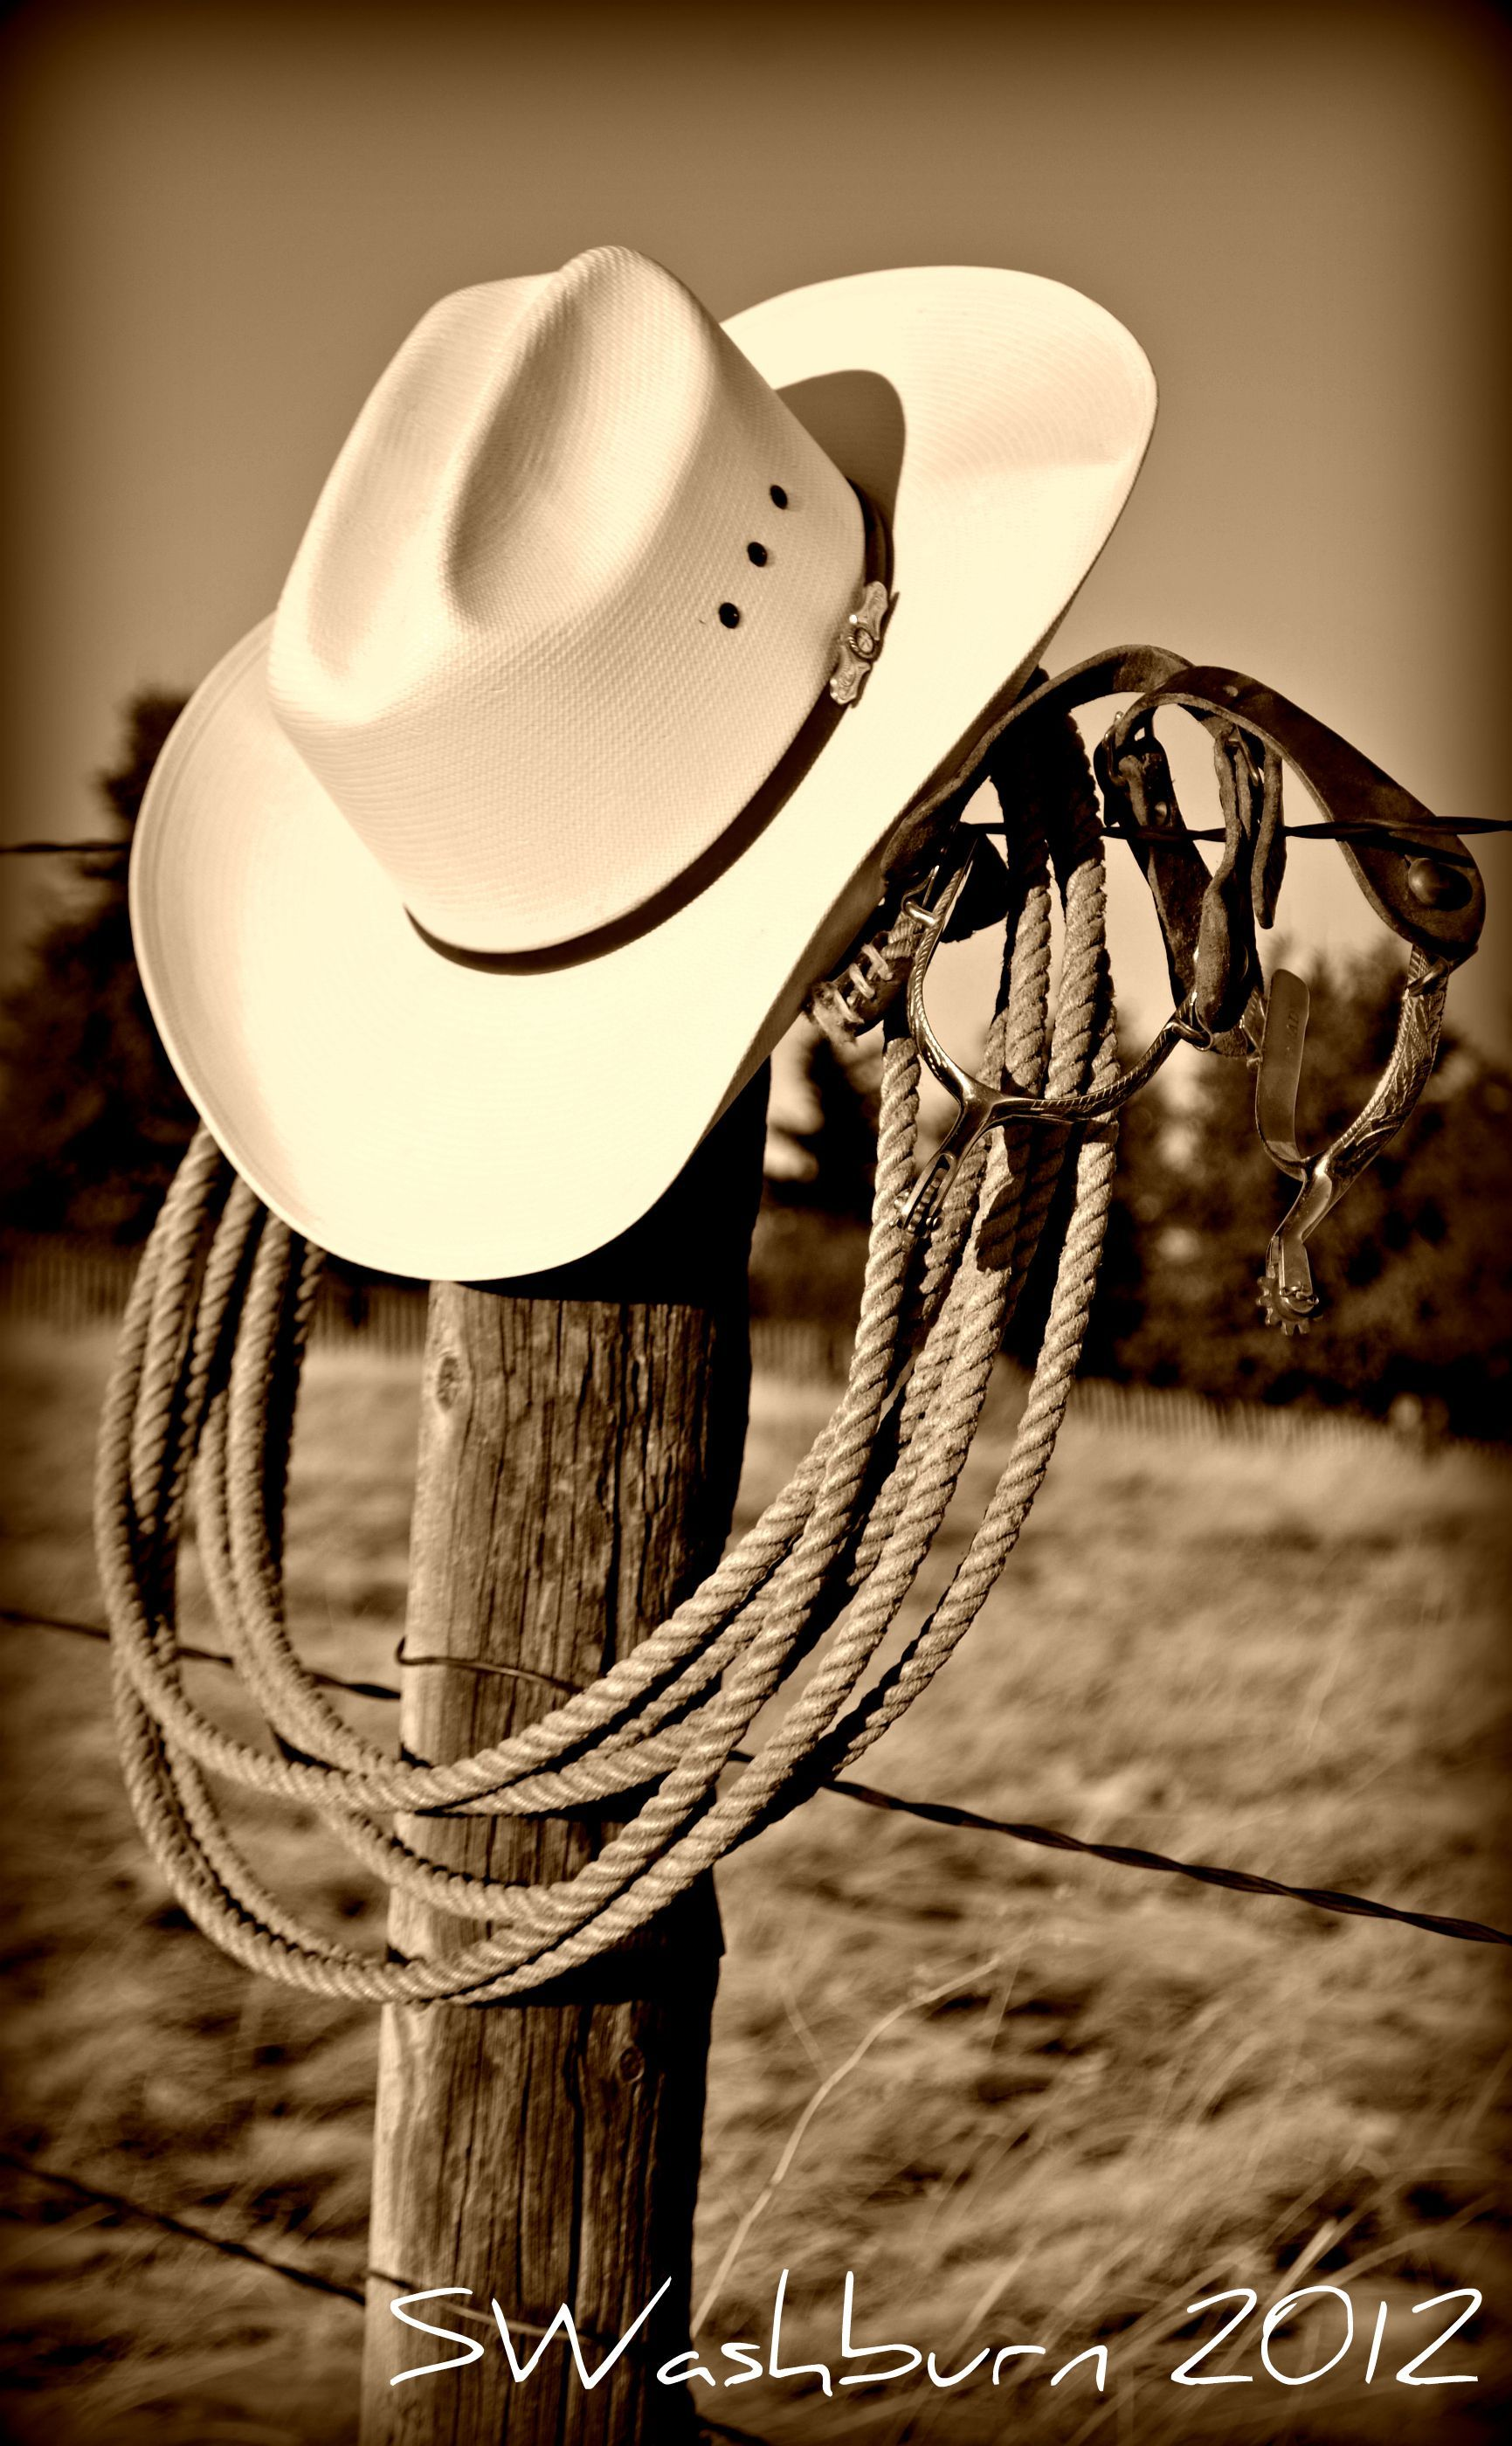 Cowboys have always been my heroes. #cowboysandcowgirls Cowboys have always been my heroes. #cowboysandcowgirls